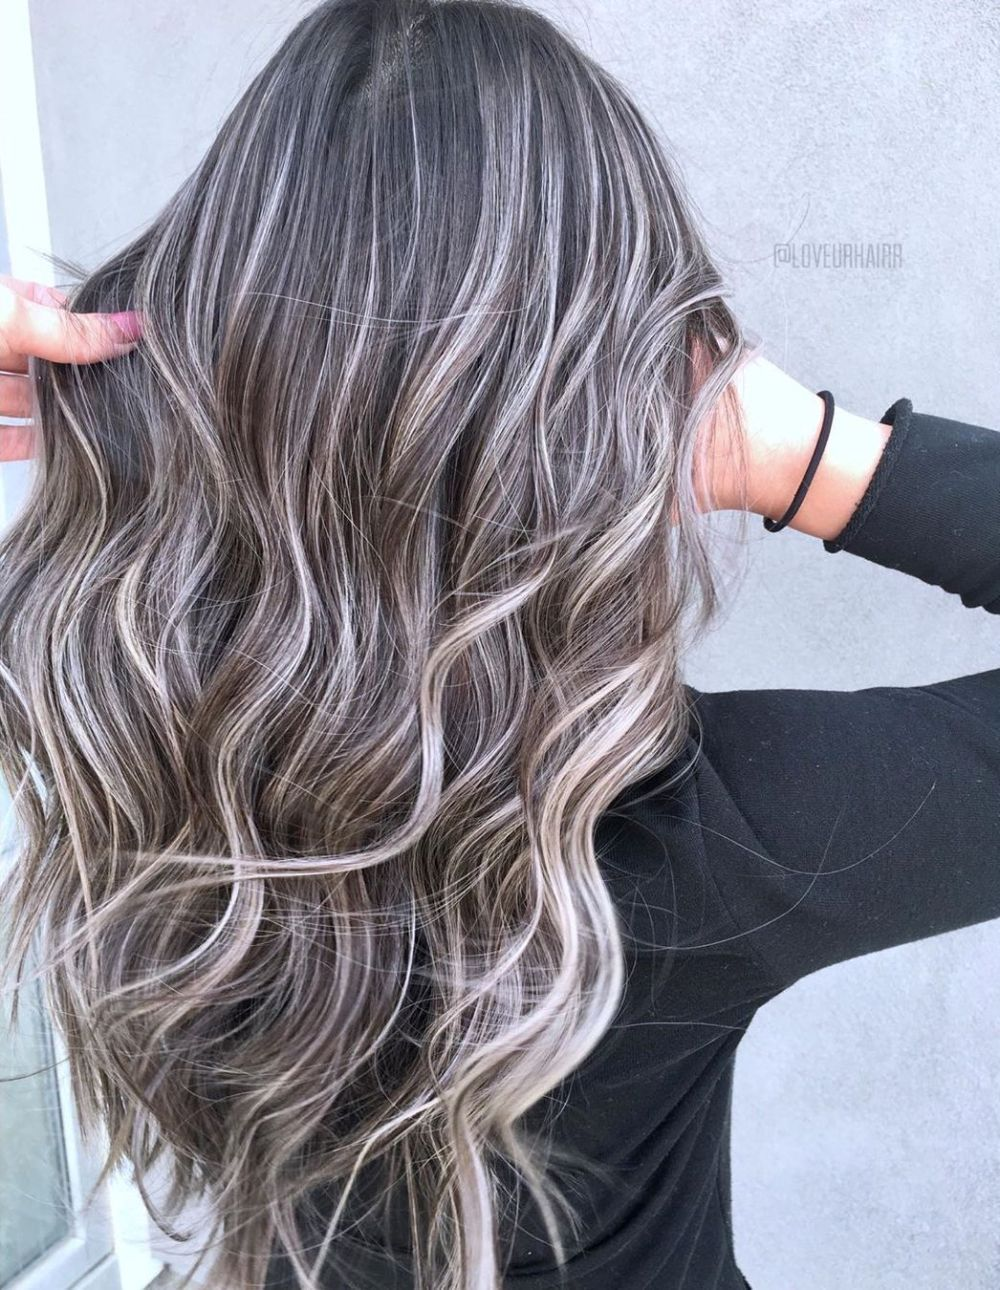 60 Shades Of Grey Silver And White Highlights For Eternal Youth Eternal Grey H Dark Hair With Highlights Blonde Highlights On Dark Hair Blonde Highlights